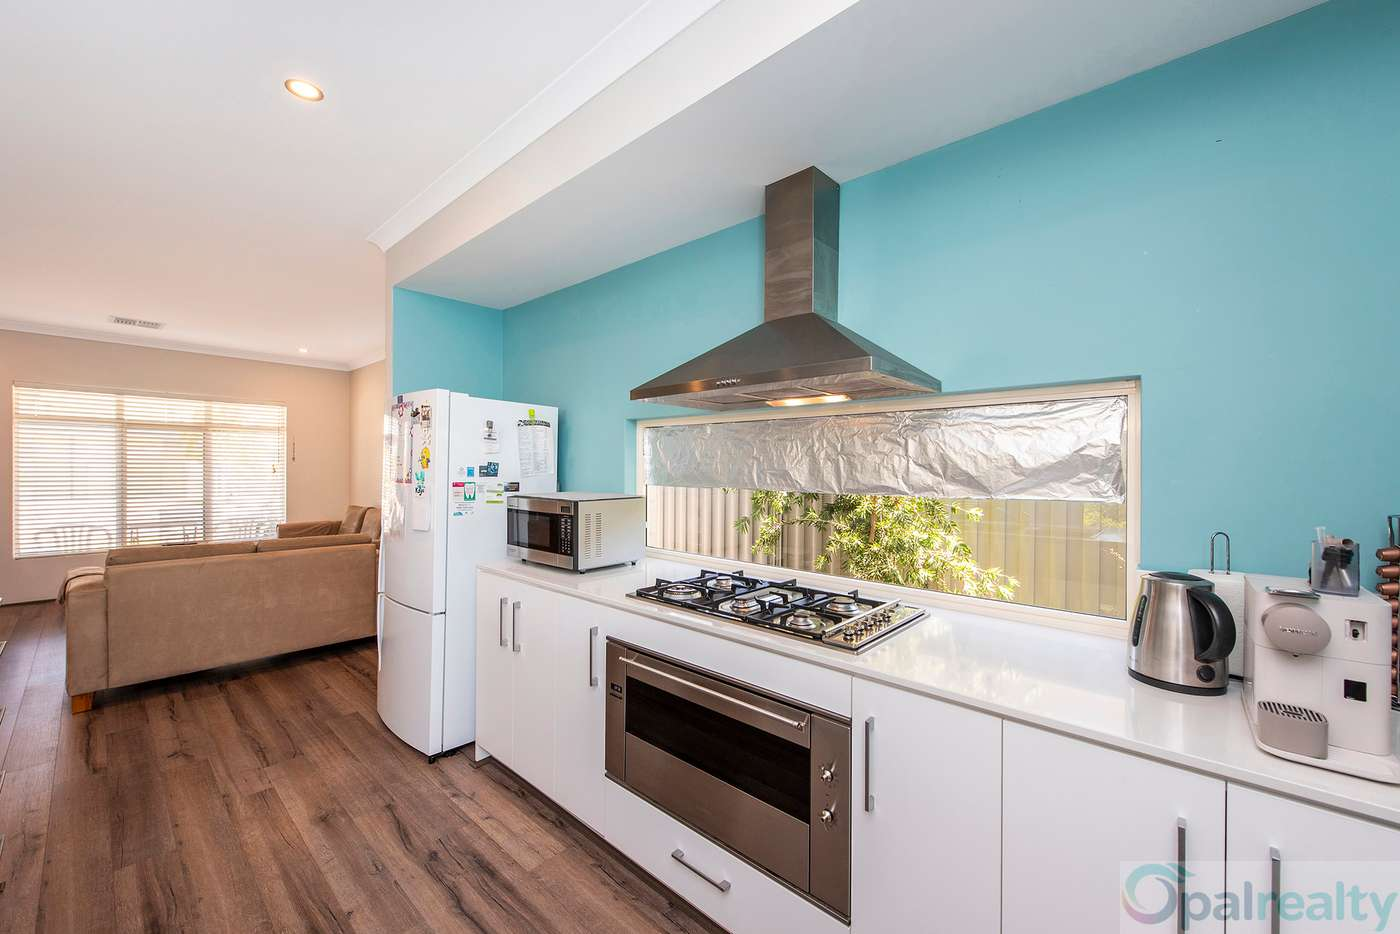 Seventh view of Homely house listing, 158 Inlet Boulevard, South Yunderup WA 6208